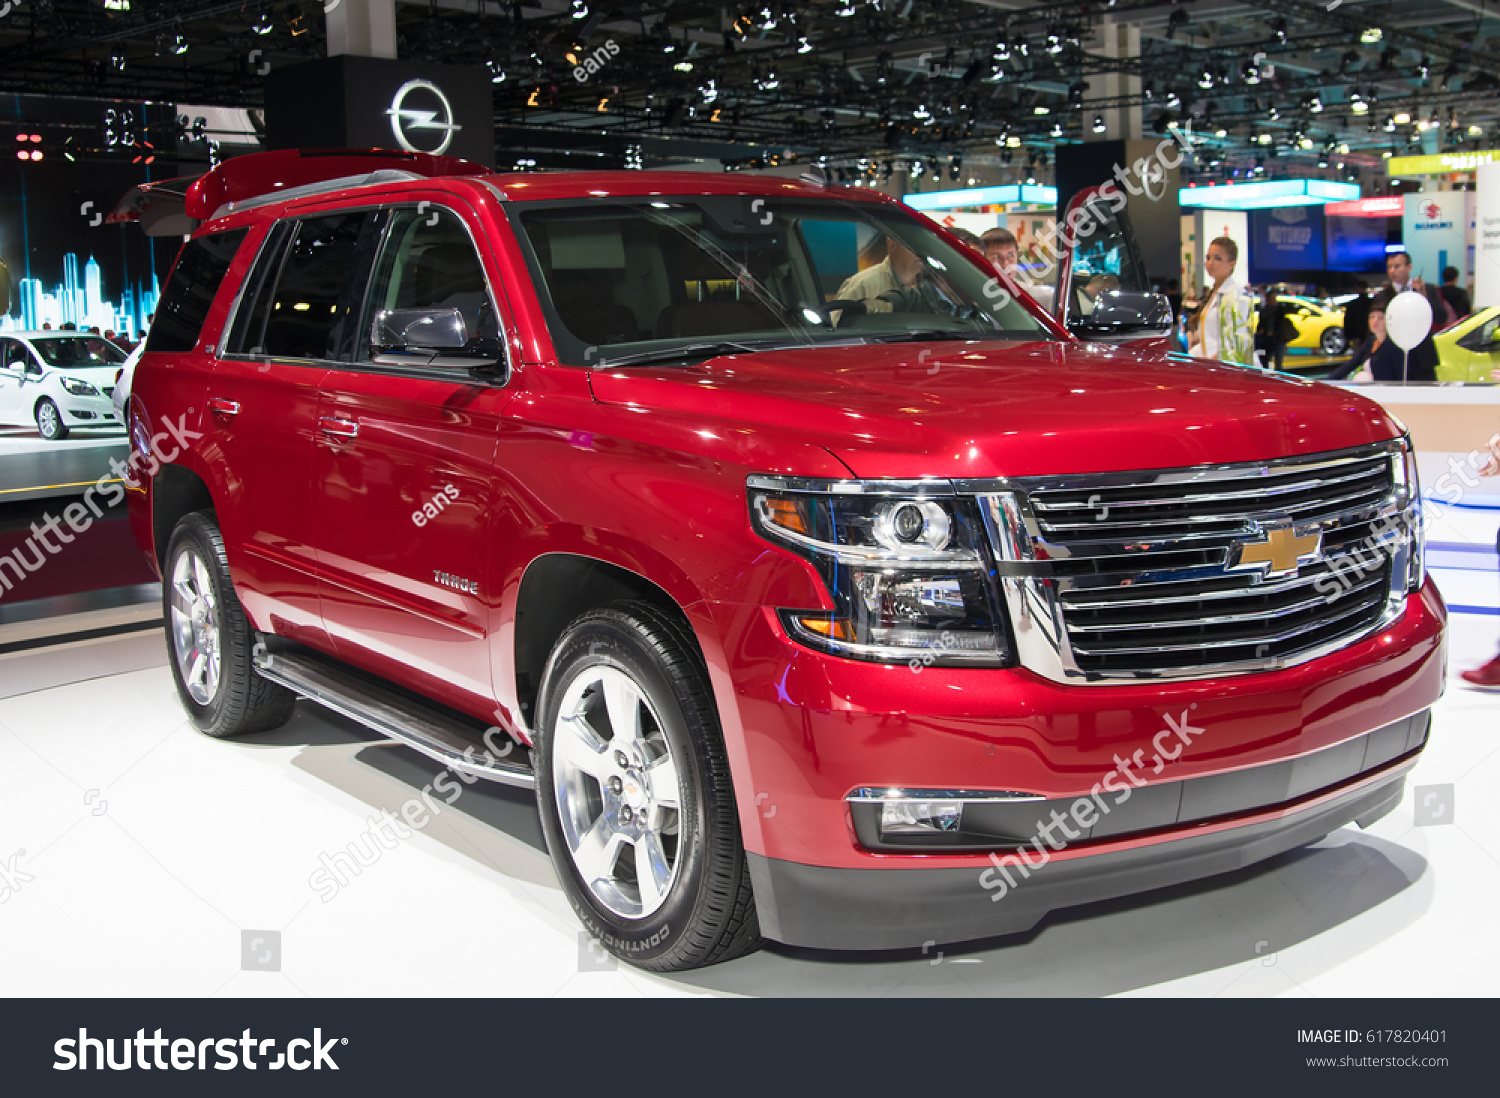 Moscowseptember 2 European Premiere Chevrolet Tahoe Stock Photo Edit Now 617820401